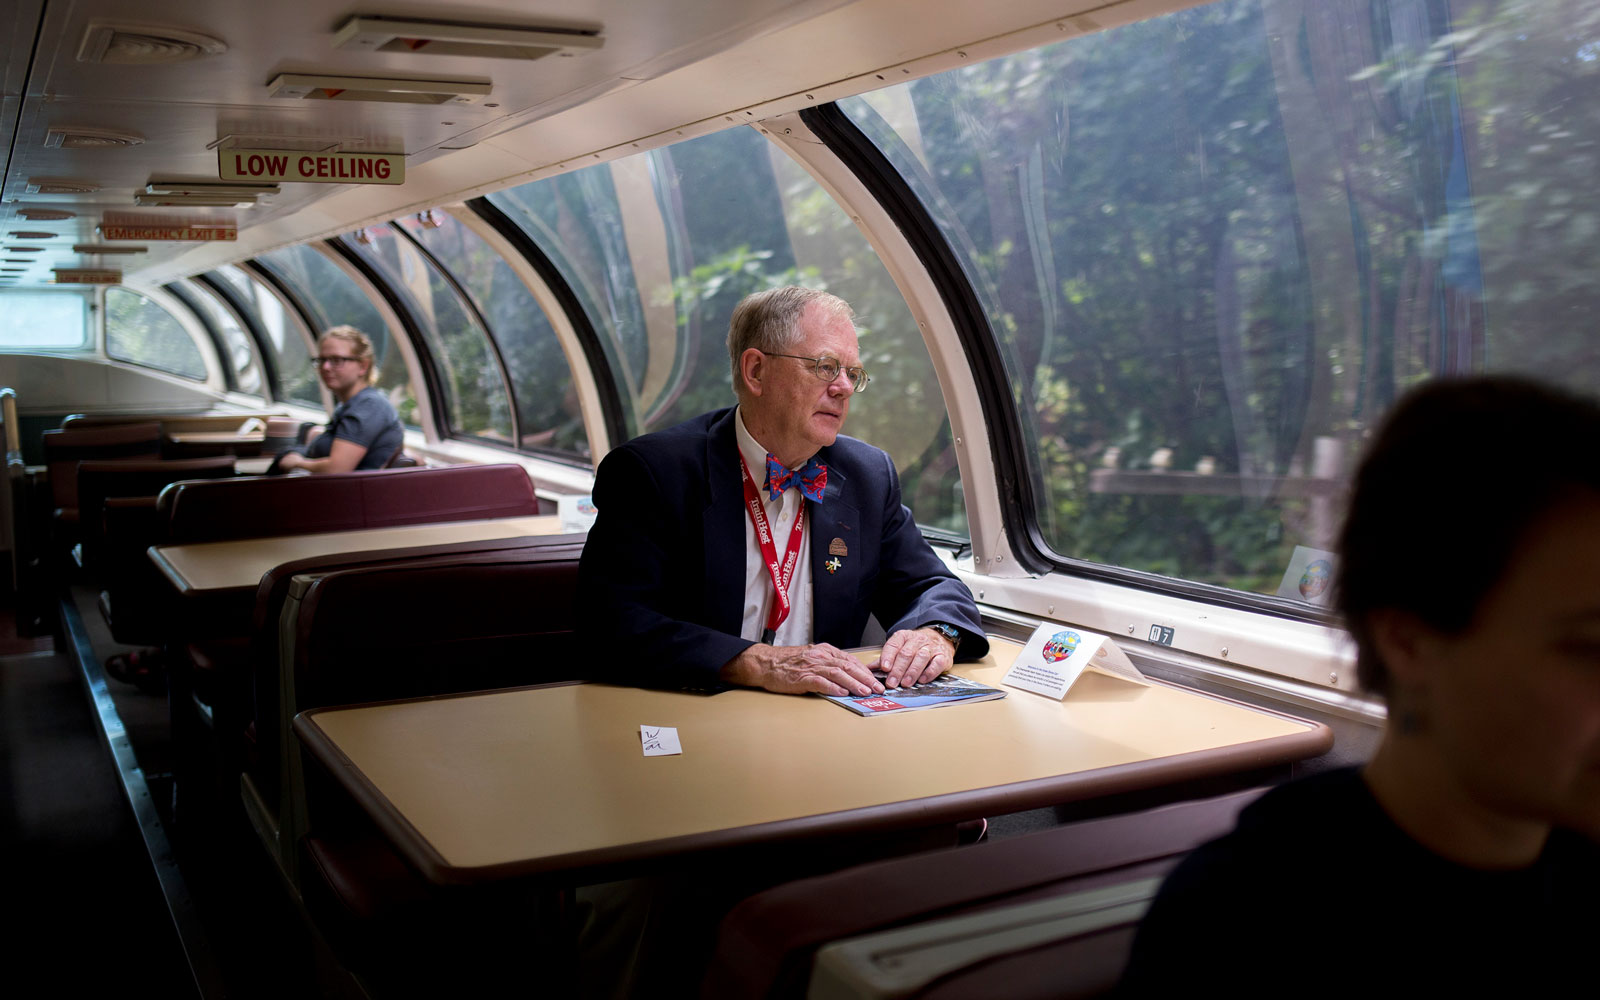 Amtrak's Great Dome Car features panoramic windows across all of its walls and its roof.